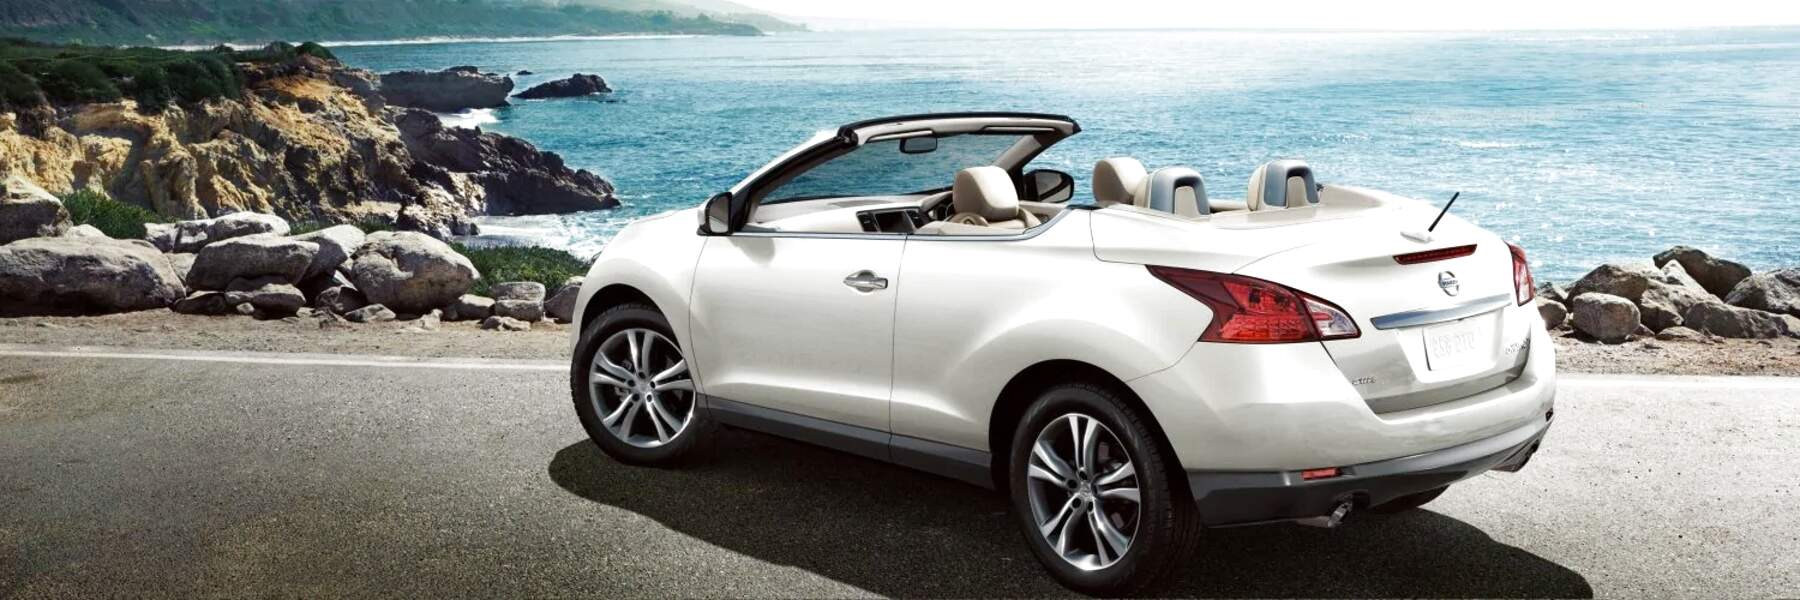 nissan convertible for sale